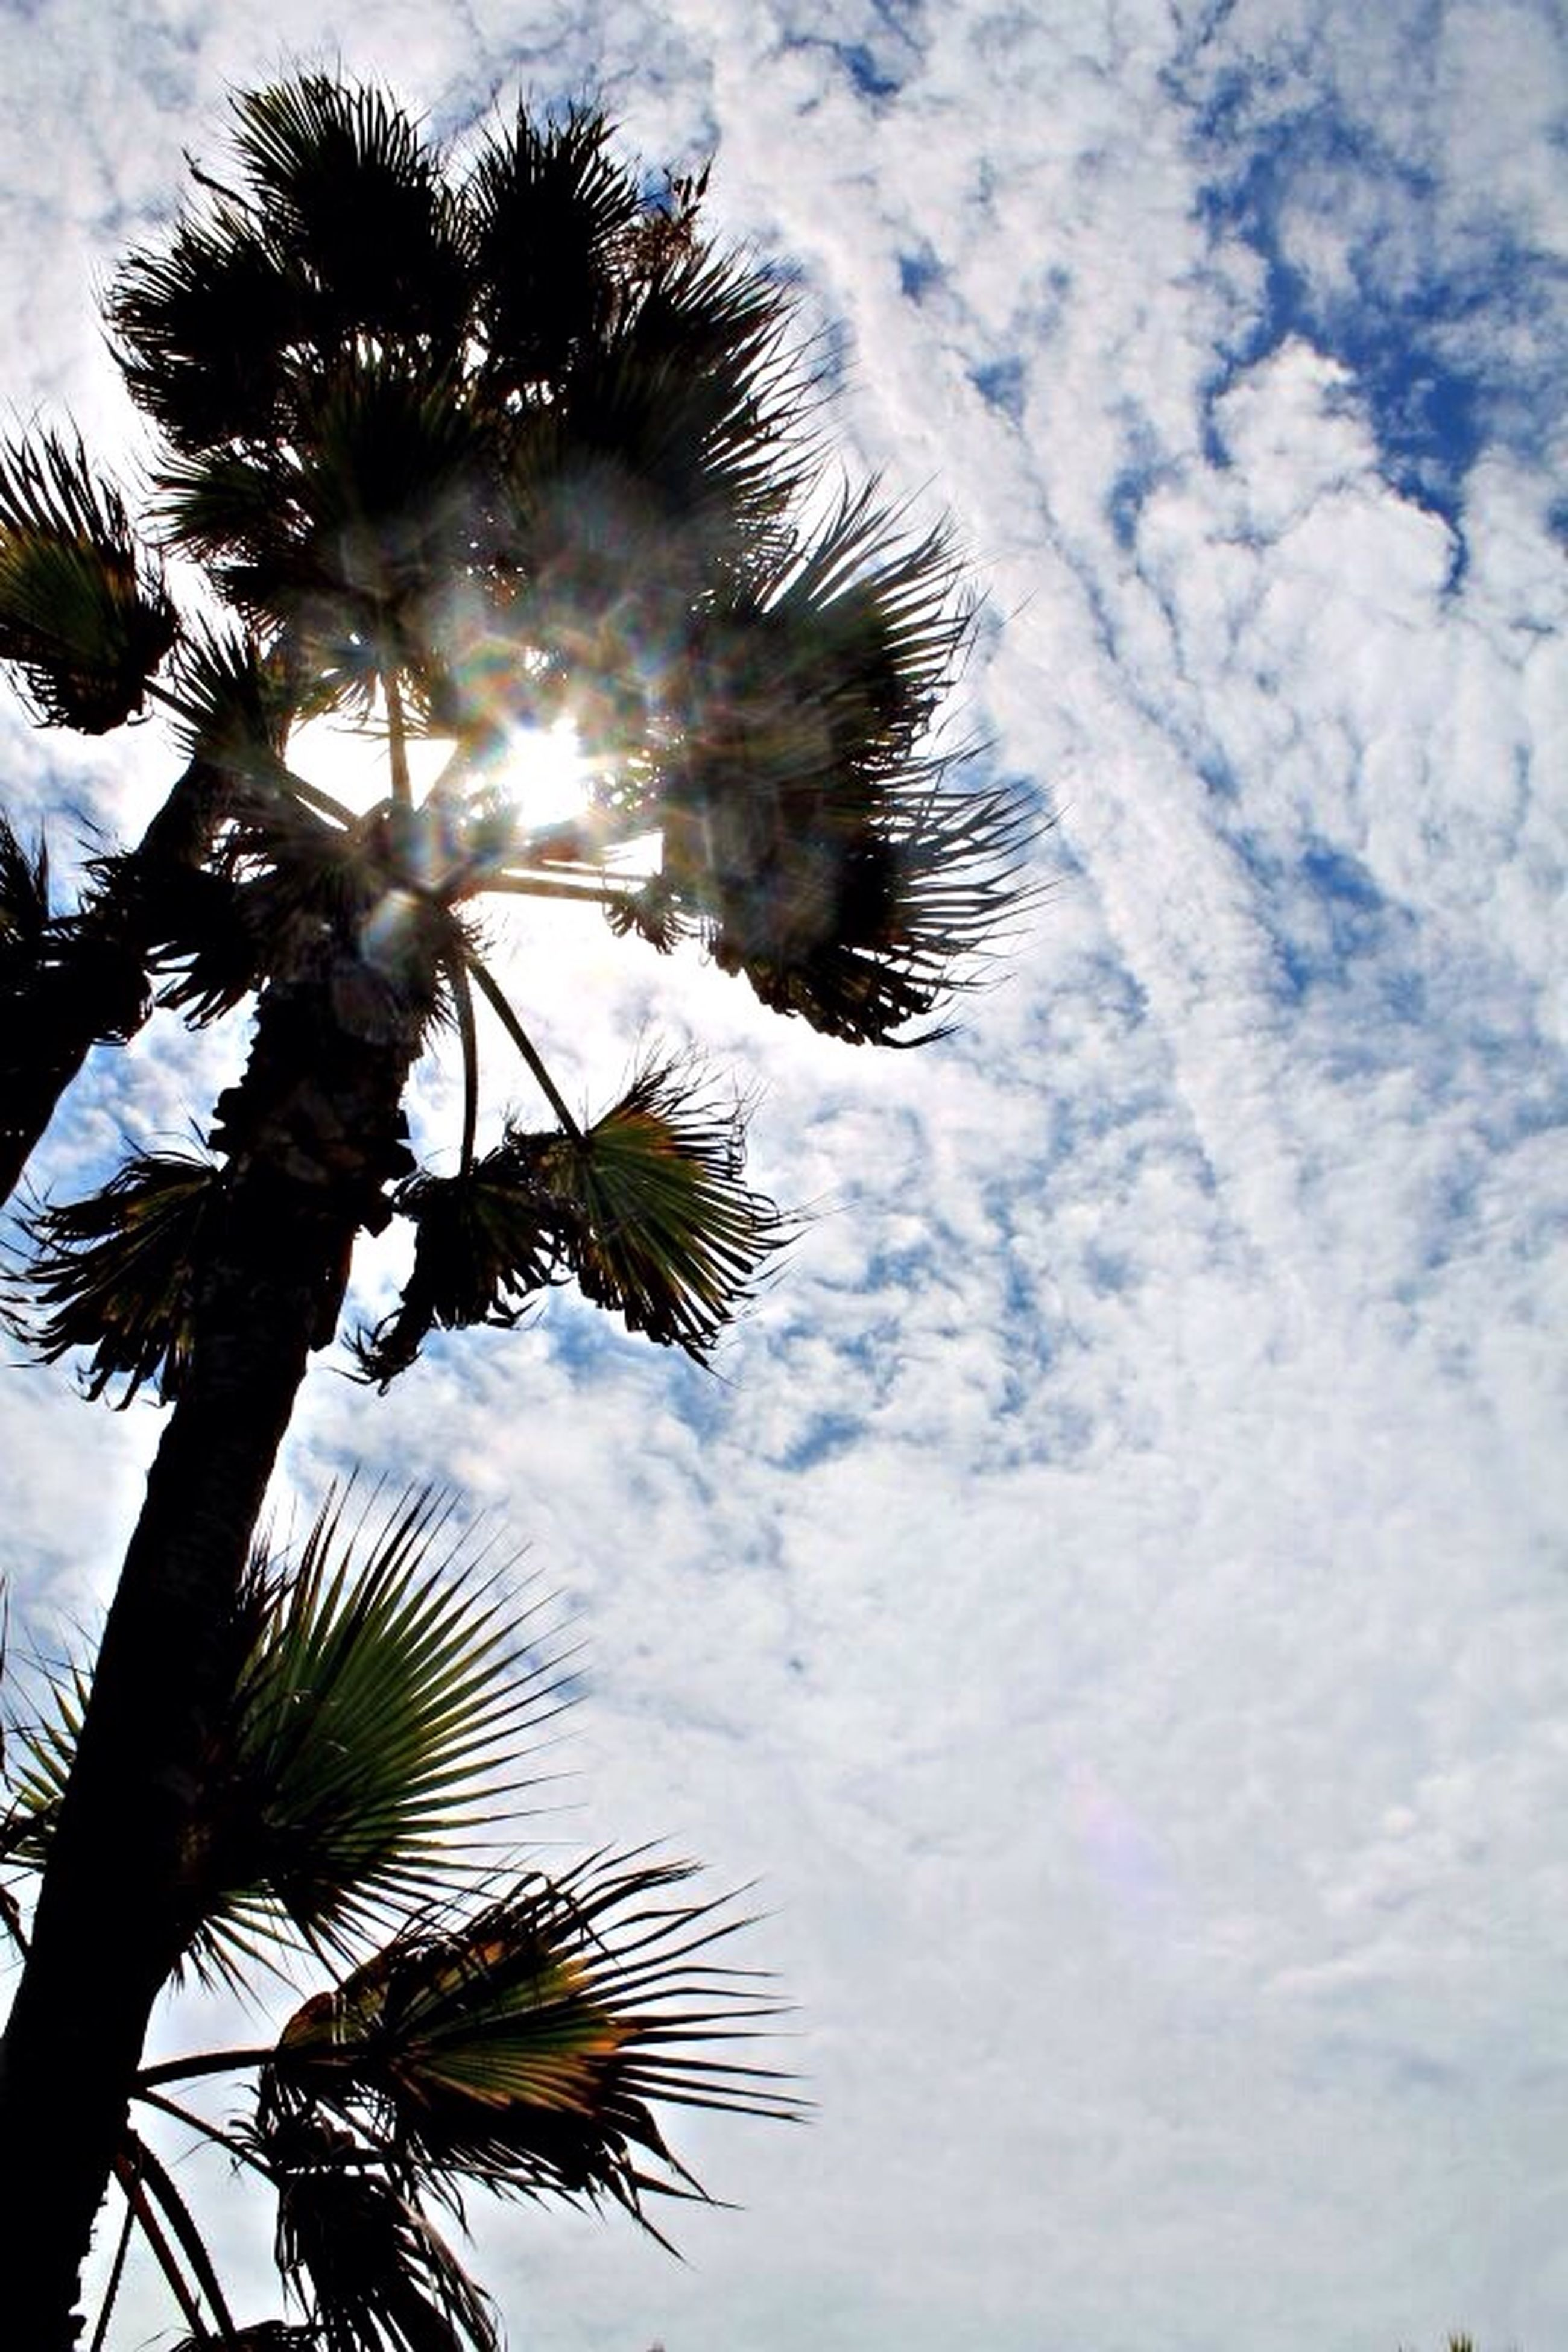 palm tree, low angle view, sky, sun, tree, growth, nature, beauty in nature, sunbeam, tranquility, sunlight, cloud - sky, silhouette, coconut palm tree, tree trunk, palm leaf, lens flare, tall - high, scenics, outdoors